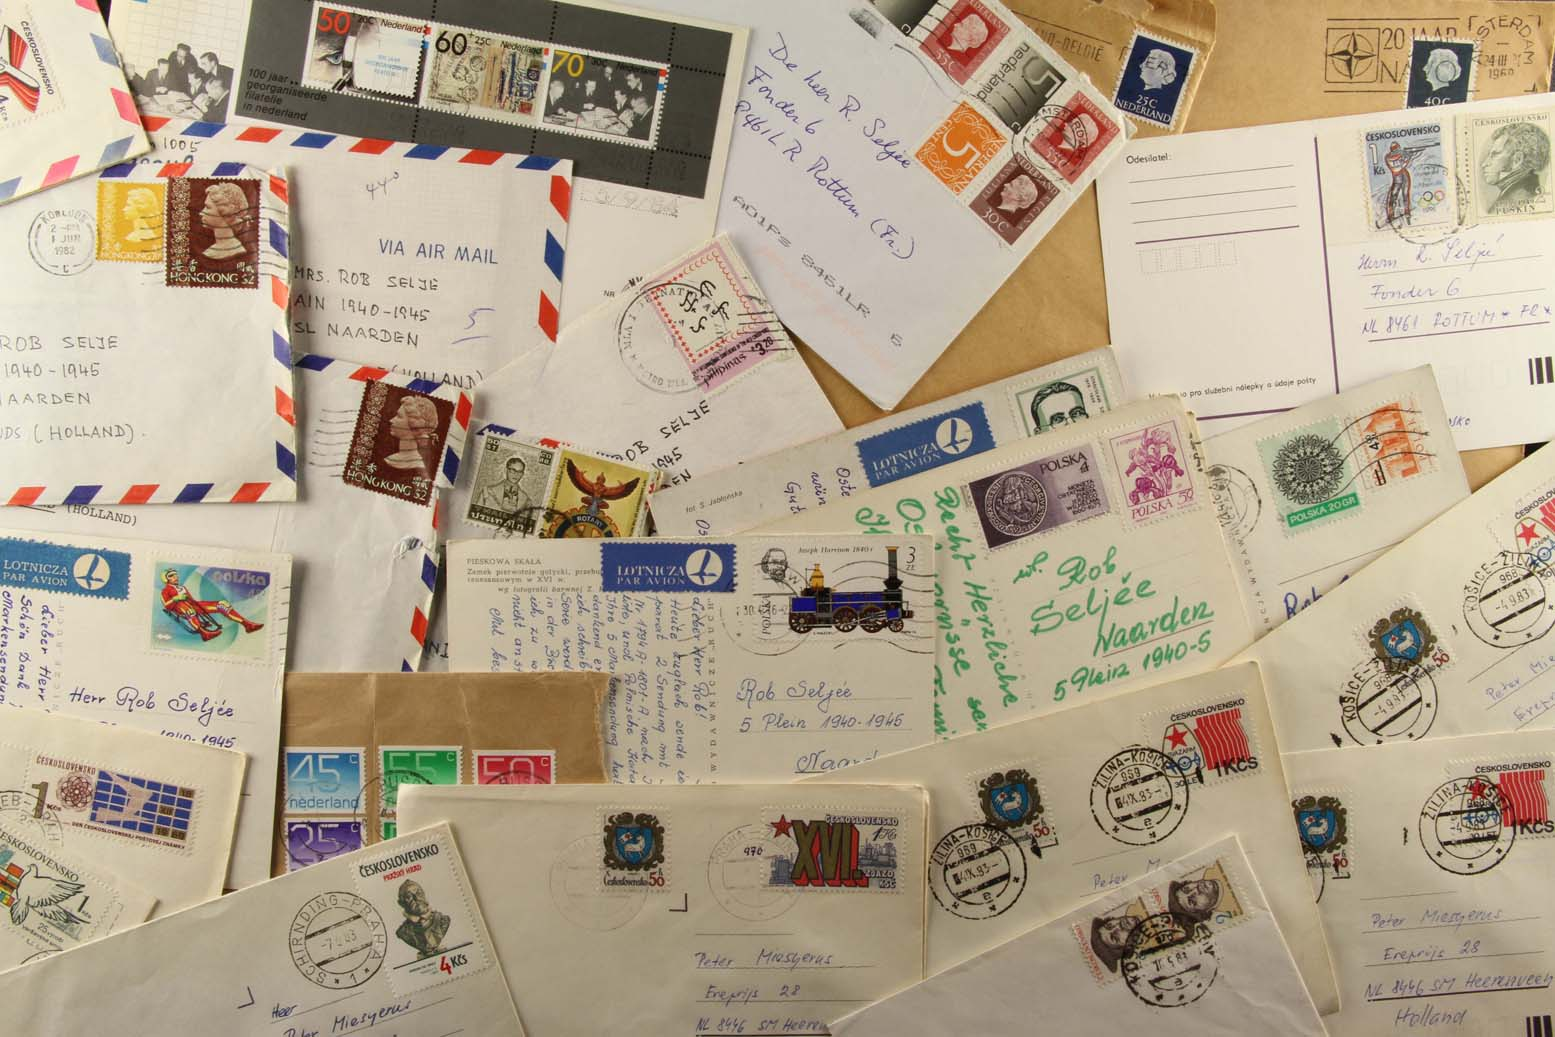 The easiest (and least expensive) way to start a stamp collection is to save the mail that arrives in your own home. Ask your friends, family members, co-workers, teachers, etc. to save their mail for you, too.